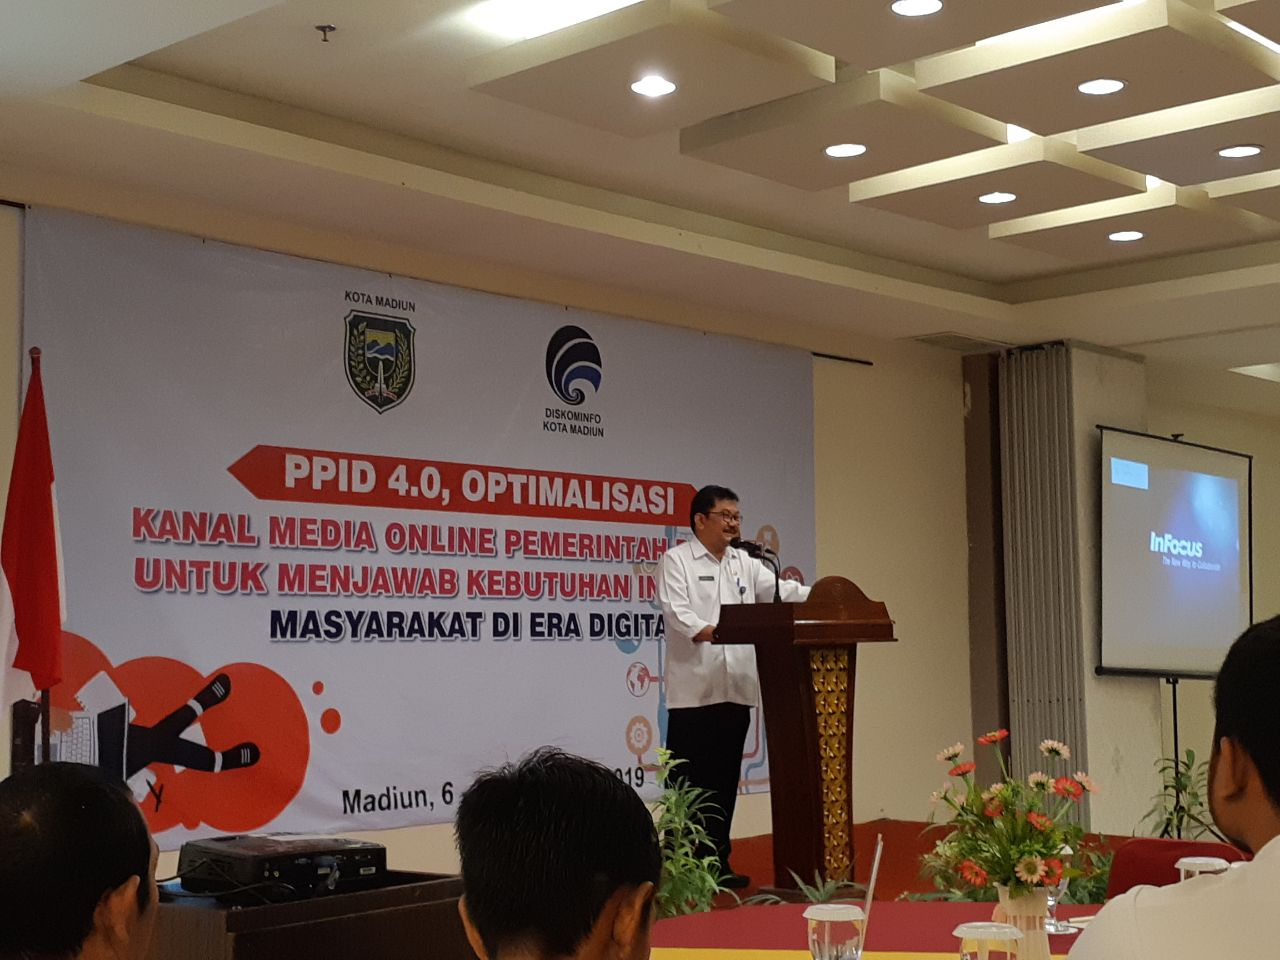 Optimalisasi Kanal Media Online di Era Digital-PPID 4.0